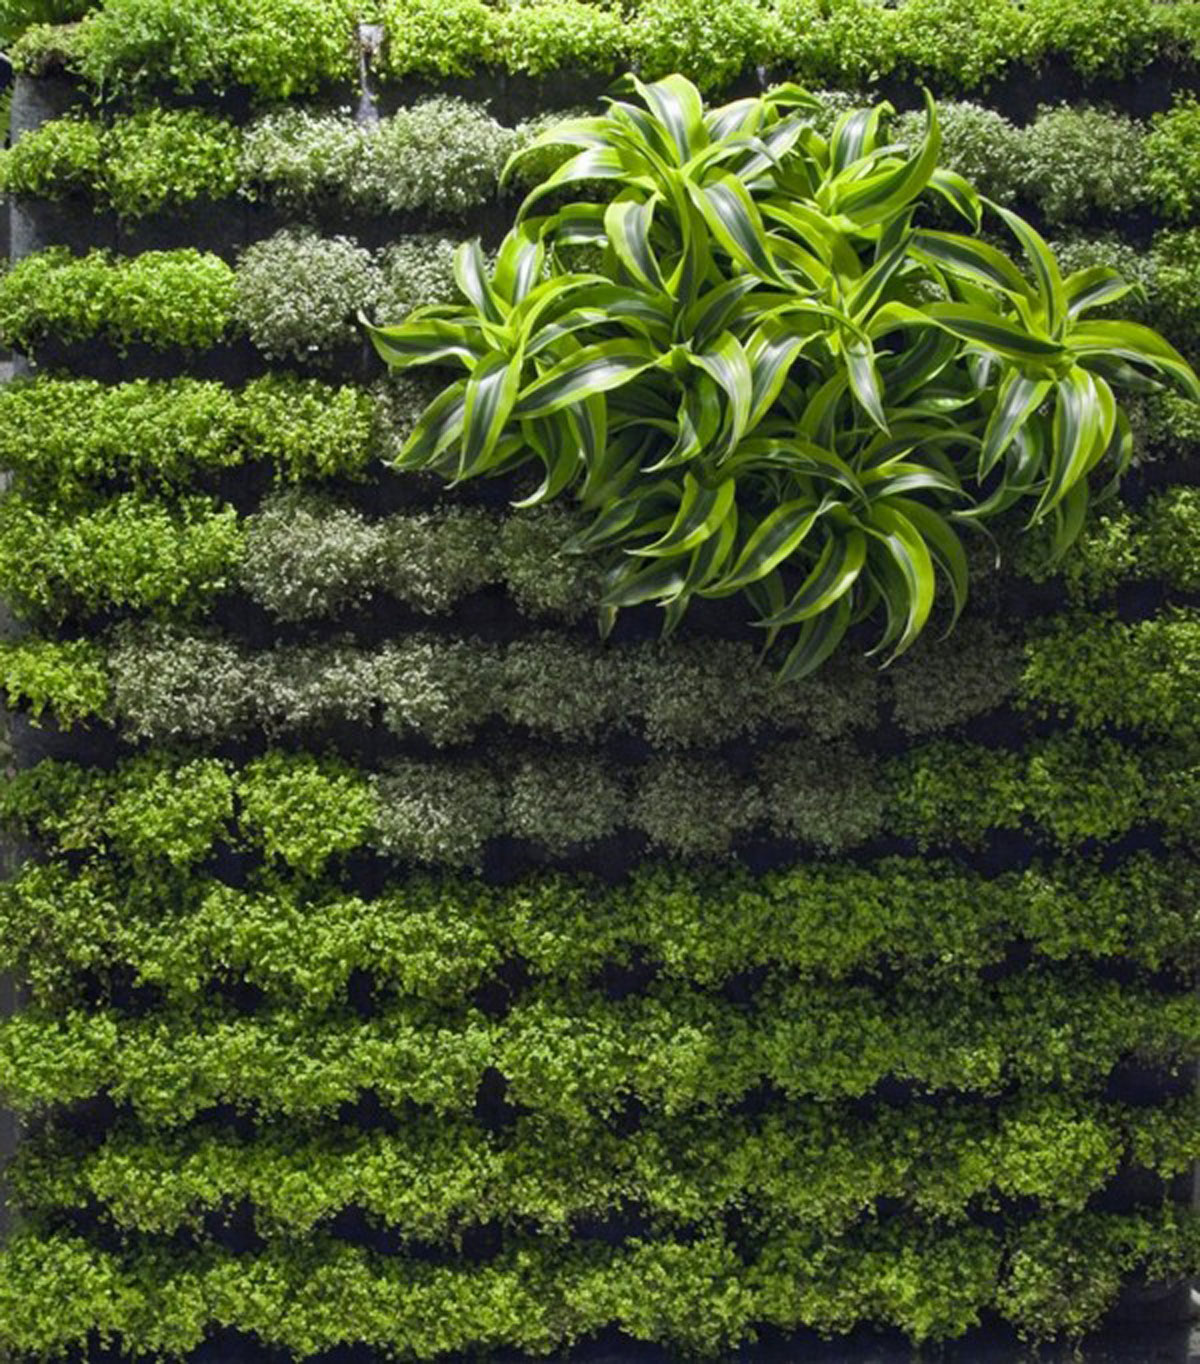 Applicative Green Wall Garden Designs - Iroonie.